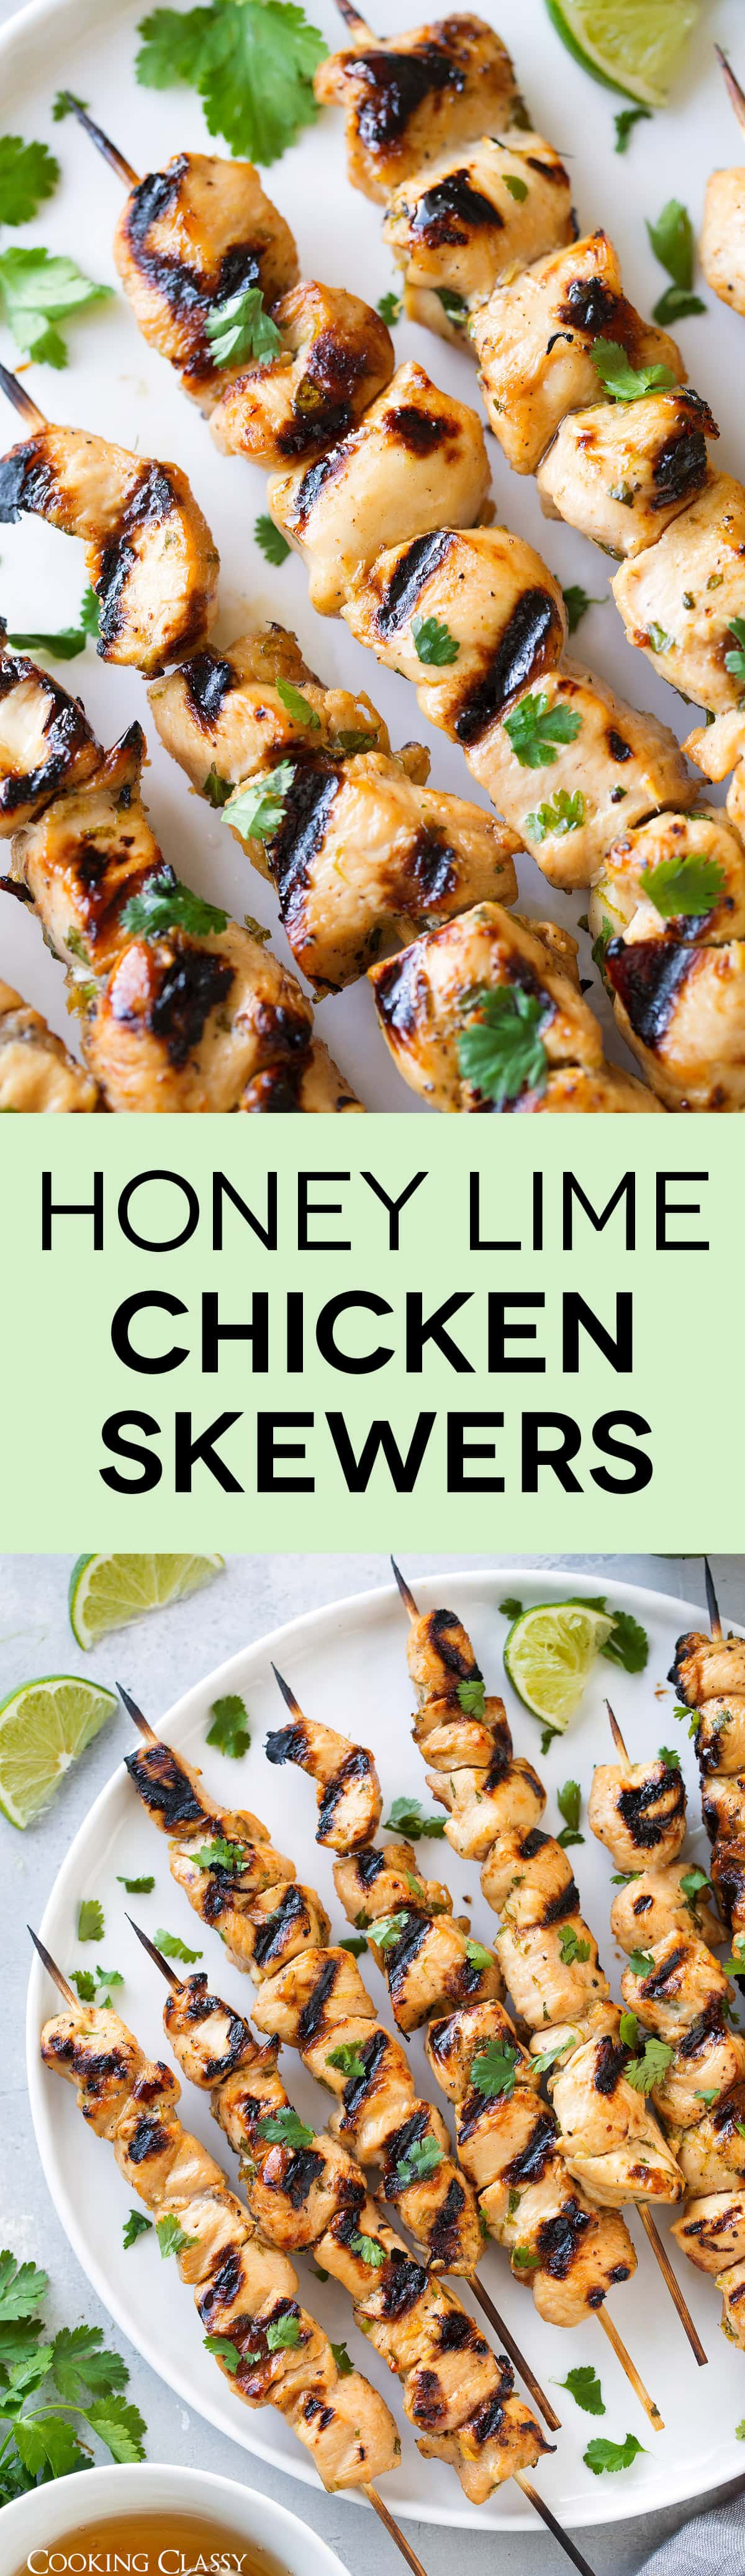 Honey Lime Chicken Skewers - AMAZING! Loved these flavors and the marinade is so easy to make. A summertime staple. #chicken #skewers #kebabs #honeylime #recipe #summer